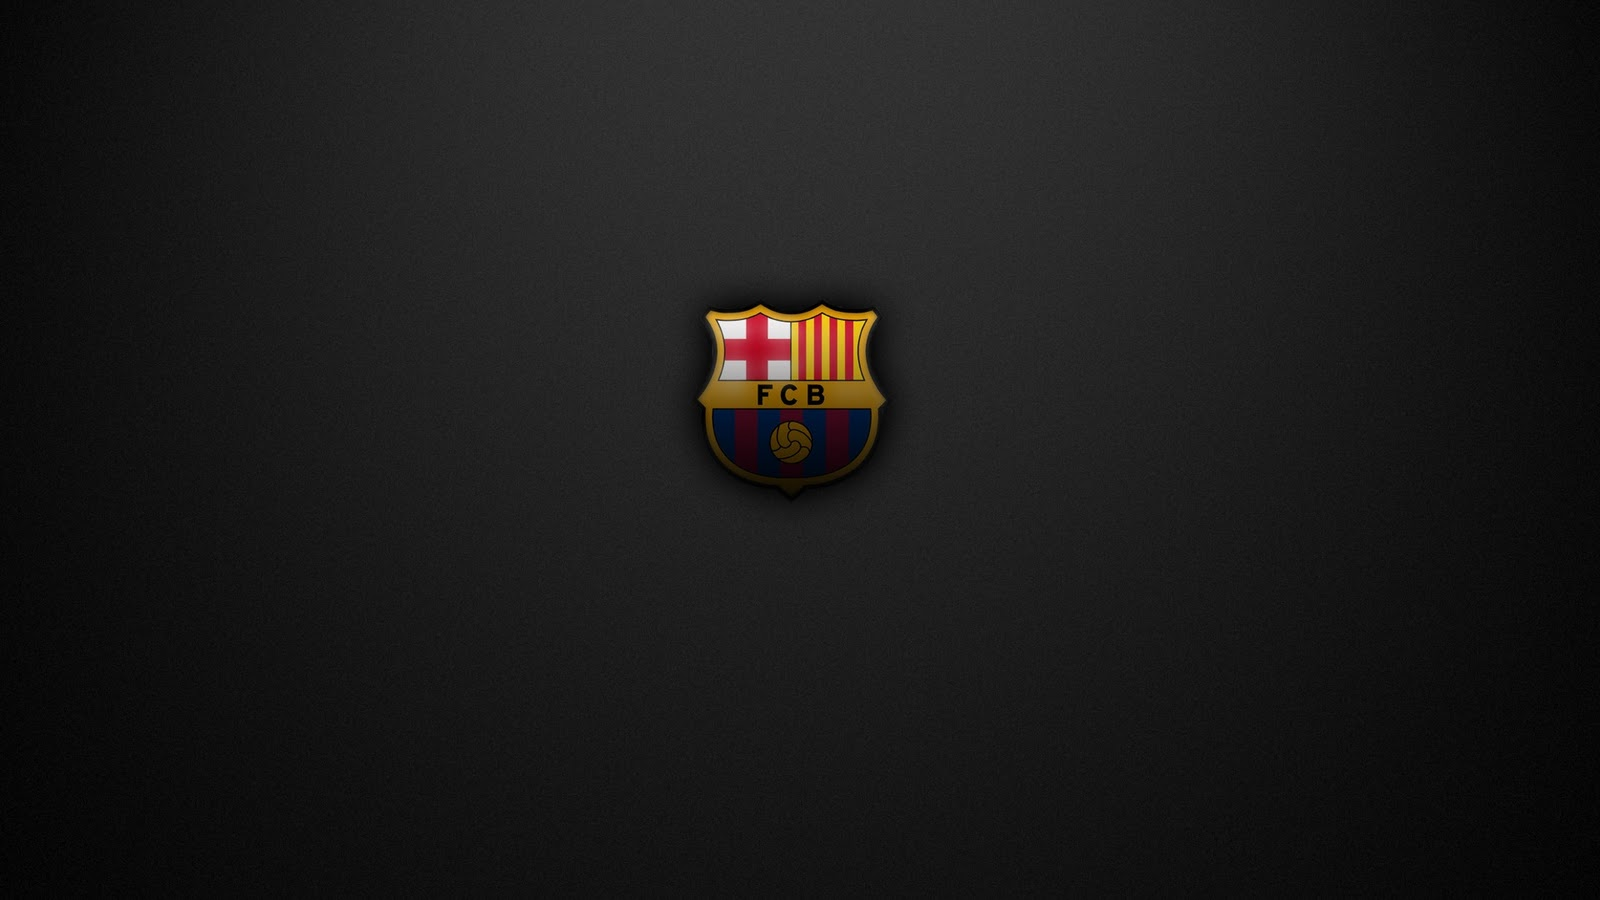 Fc Barcelona Full Hd Wallpapers Wallpapers Full Hd